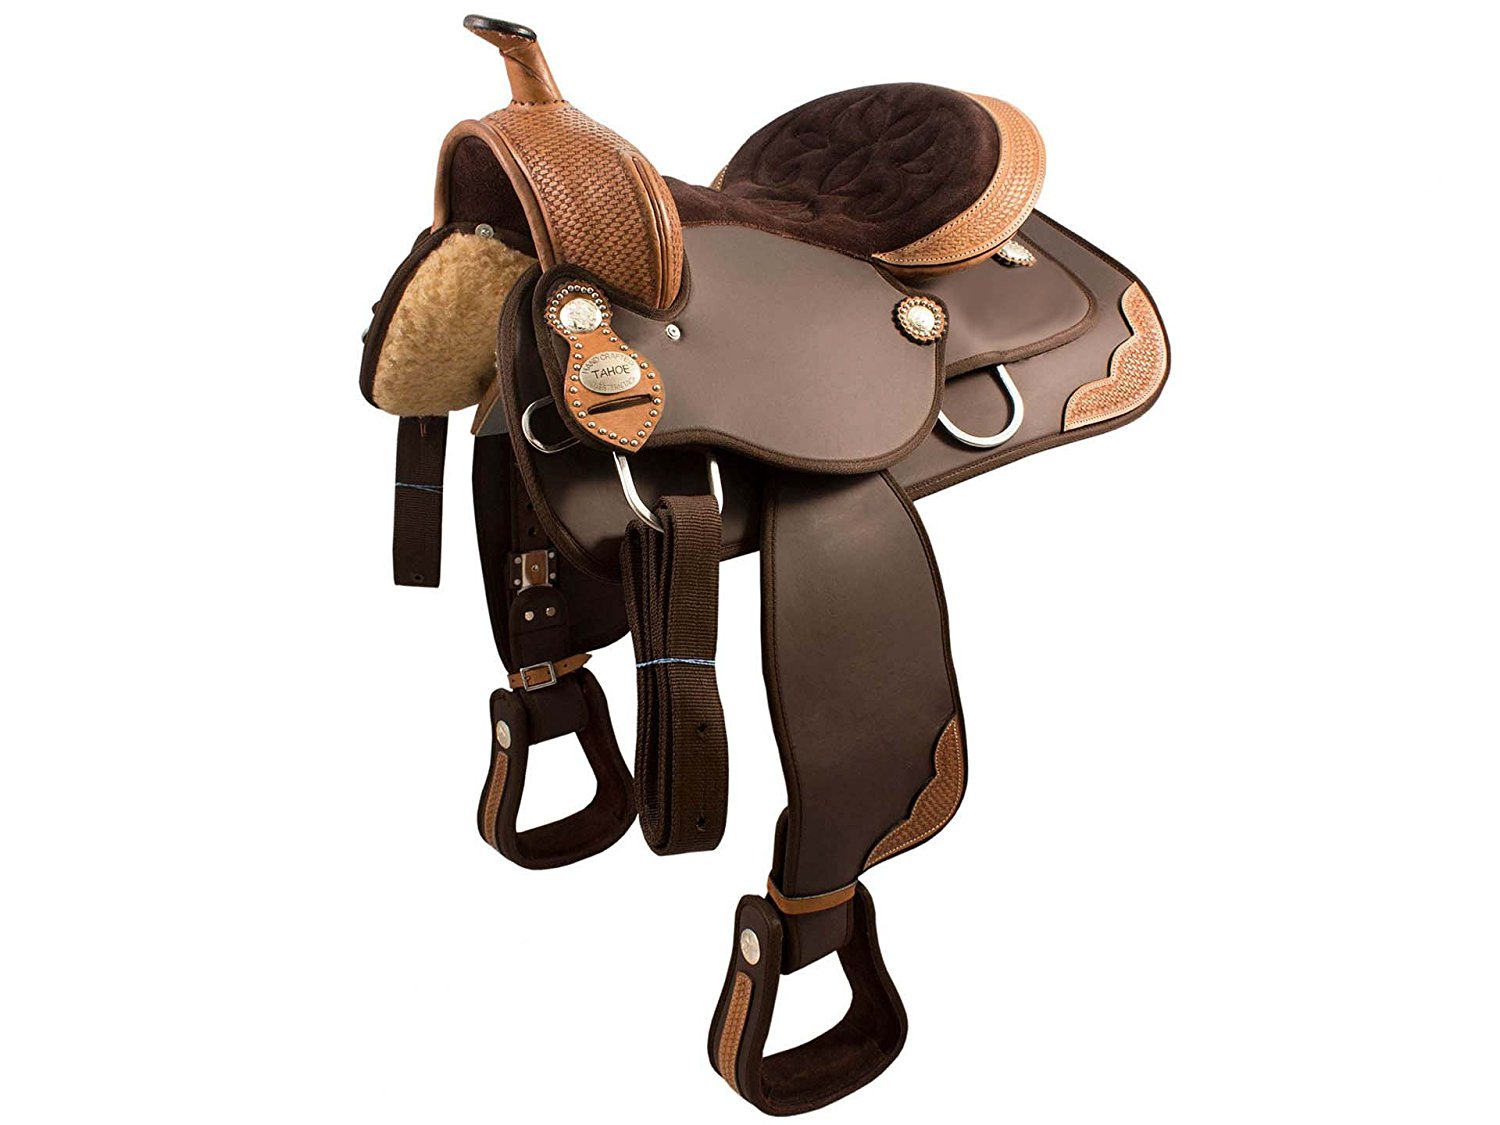 Tahoe Synthetic Western Saddle with Basket Weave Leather Trims – Comes in 5 Sizes